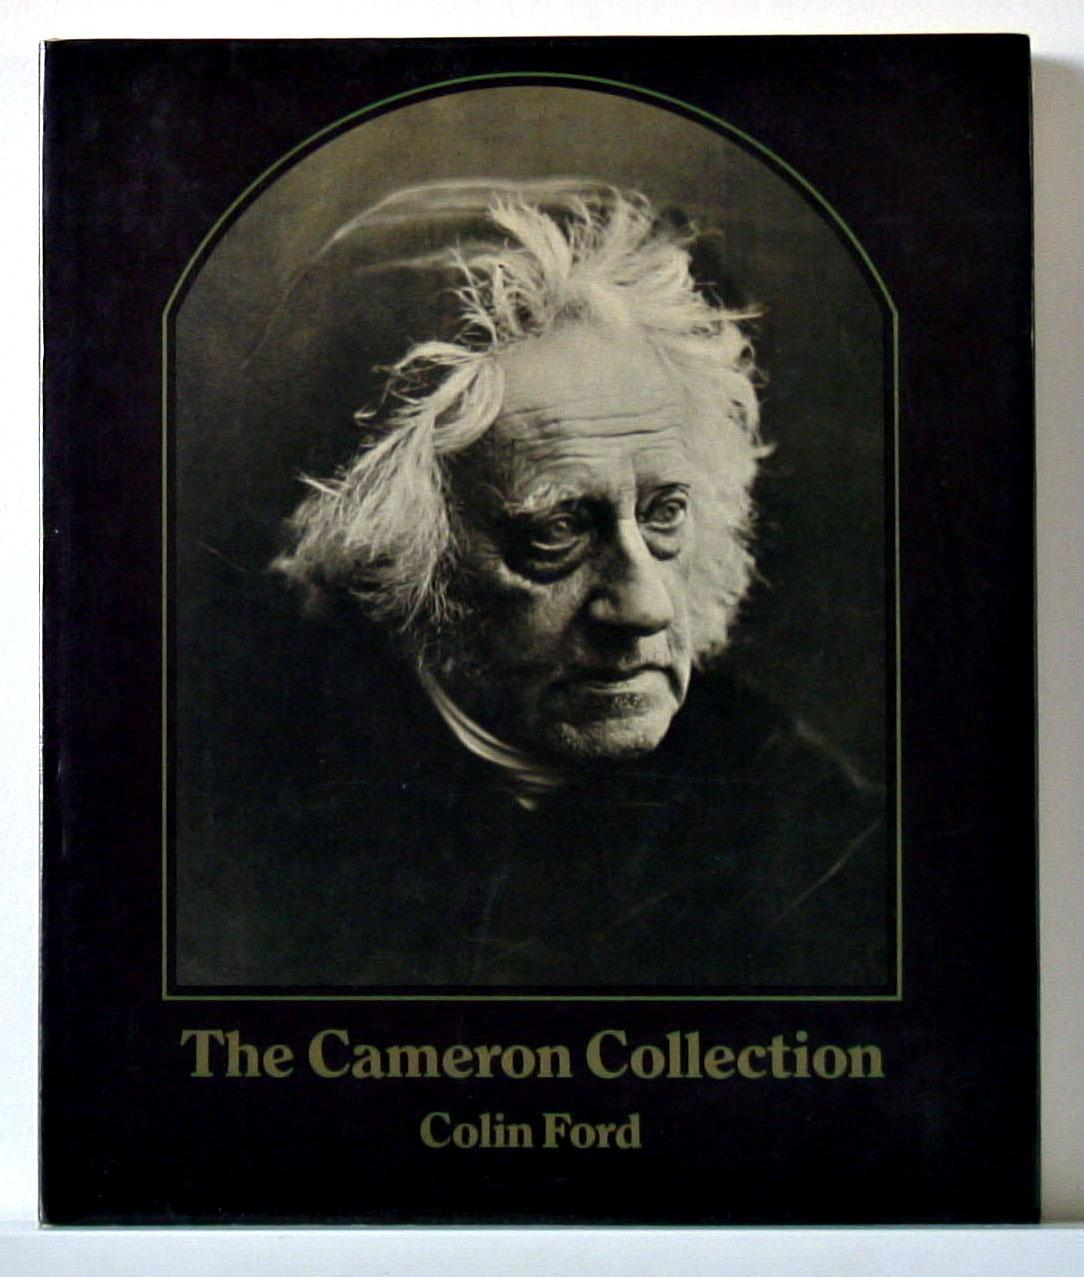 The Cameron collection: An album of photographs presented to Sir John Herschel